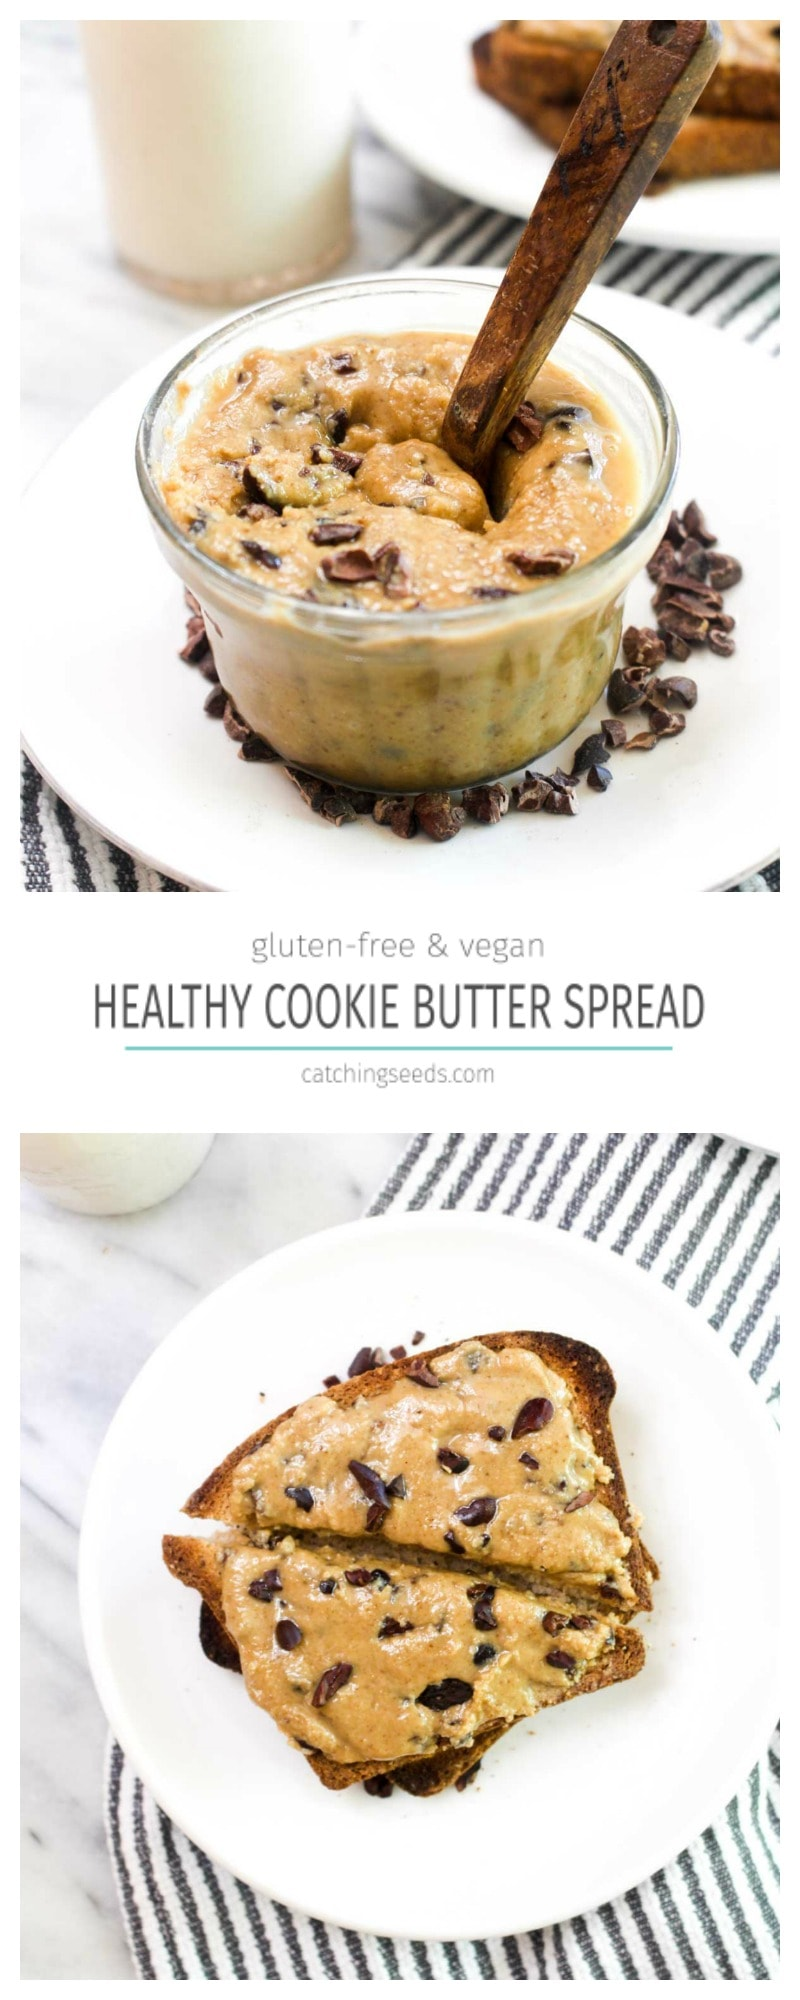 This Healthy Cookie Butter recipe is an easy 10 minute 2 step recipe! This sweet spread is gluten-free, vegan, and paleo. | CatchingSeeds.com